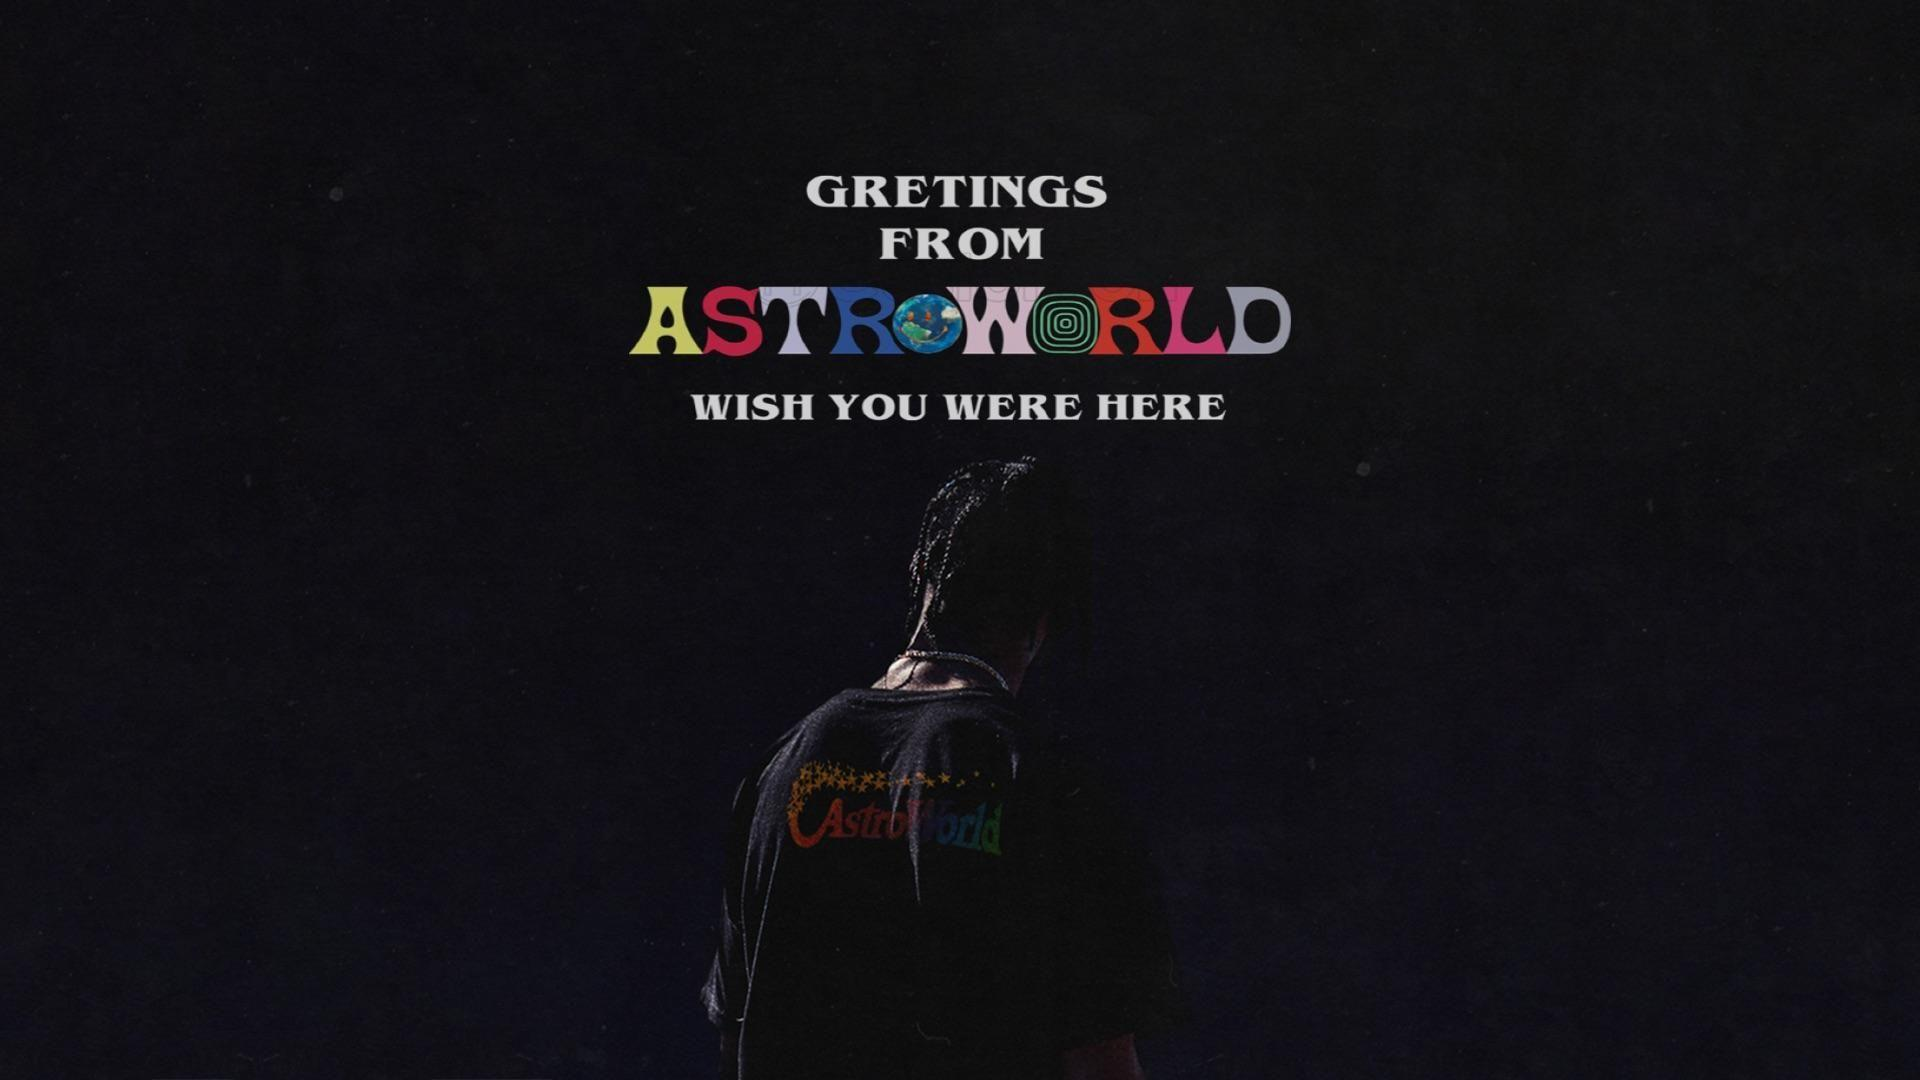 Astroworld Aesthetic Desktop Wallpapers Wallpaper Cave